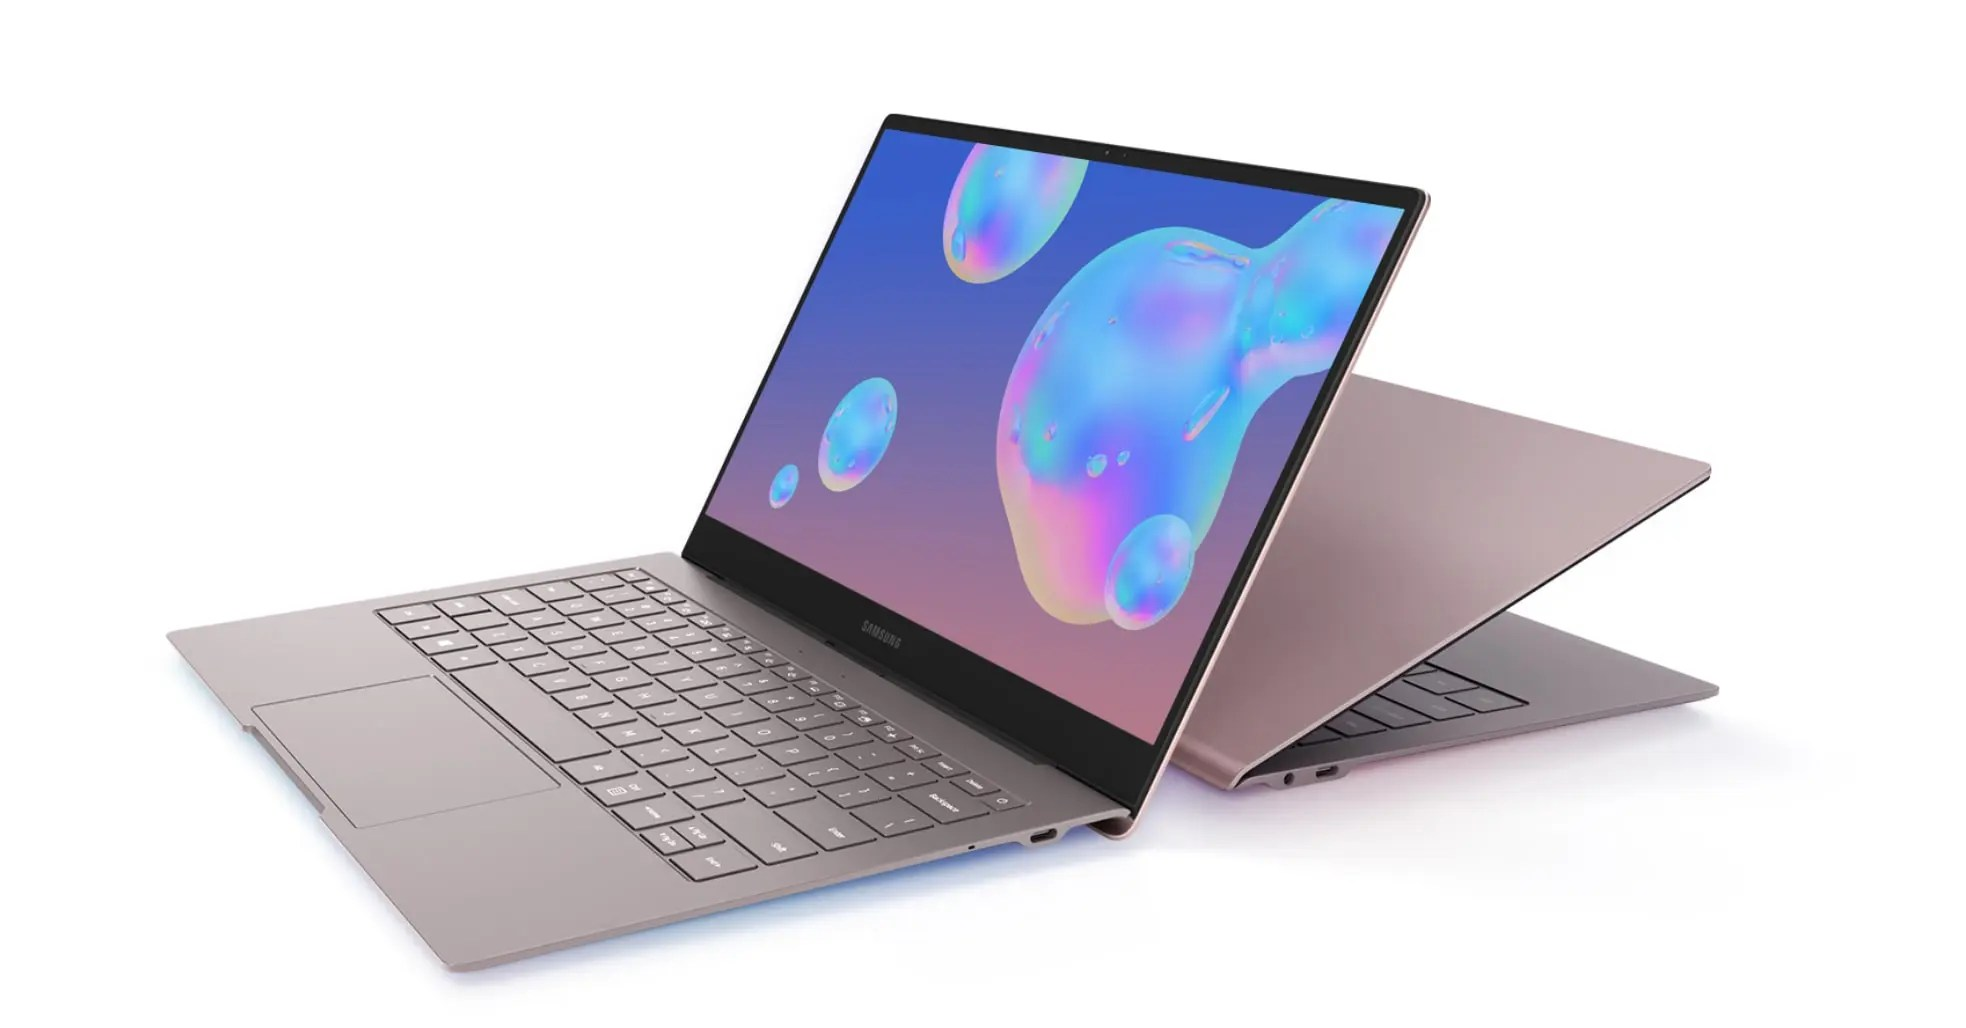 Samsung brings Galaxy Book S, Galaxy Book Flex and Galaxy Book worldwide